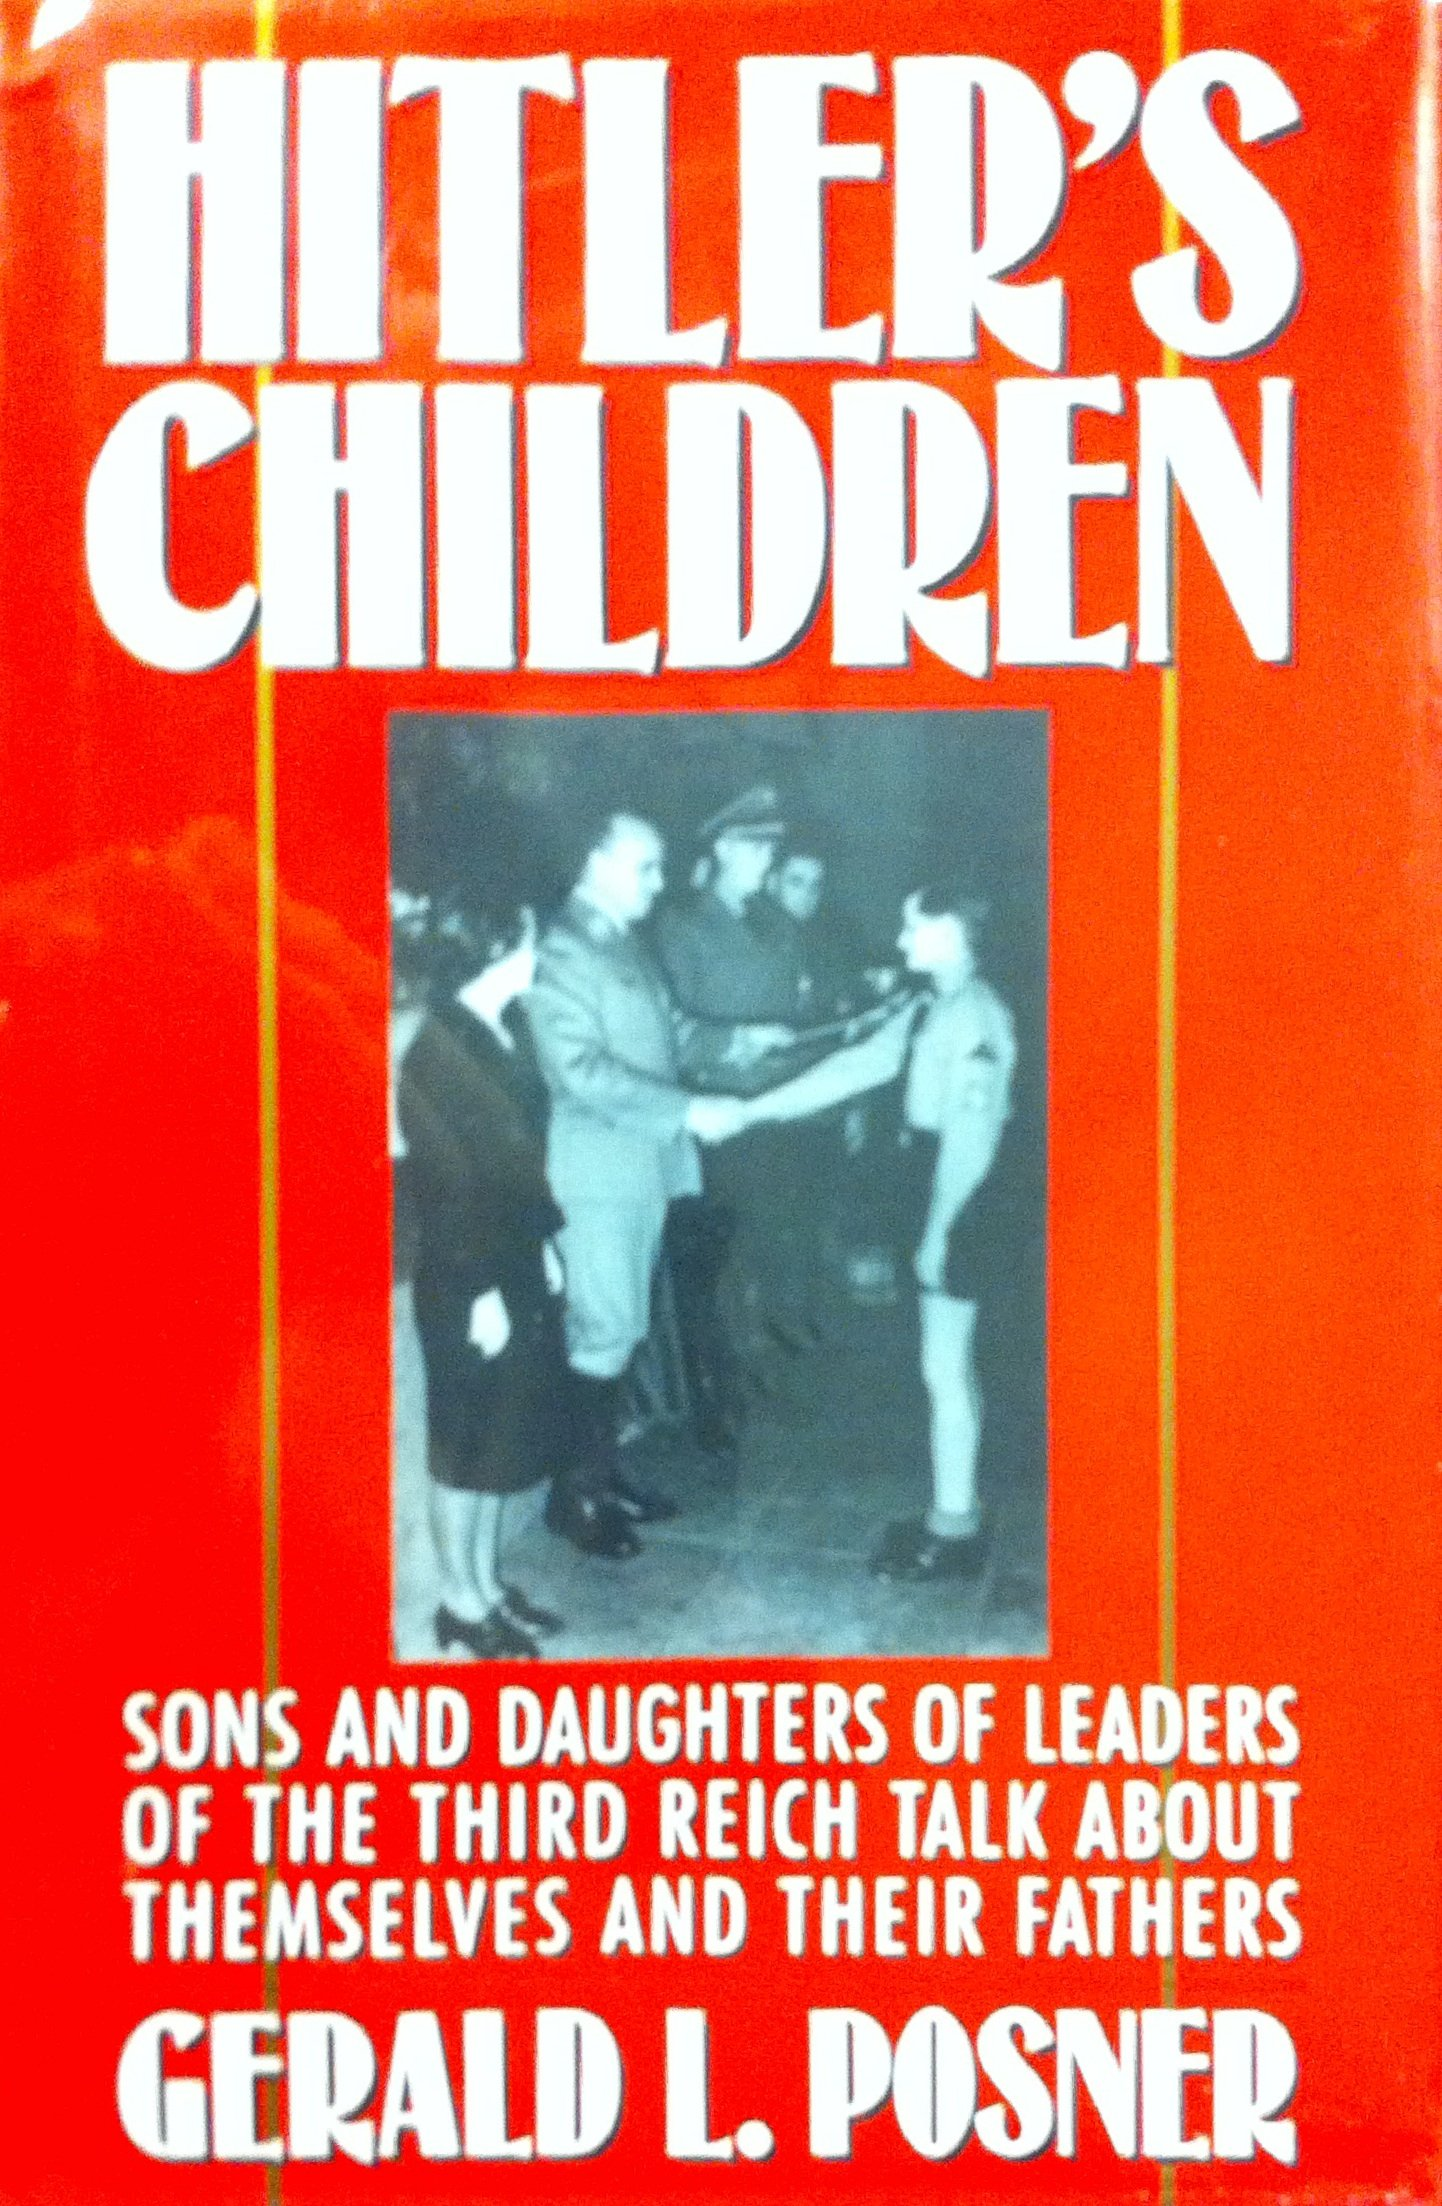 Hitlers Children Daughters Leaders Themselves